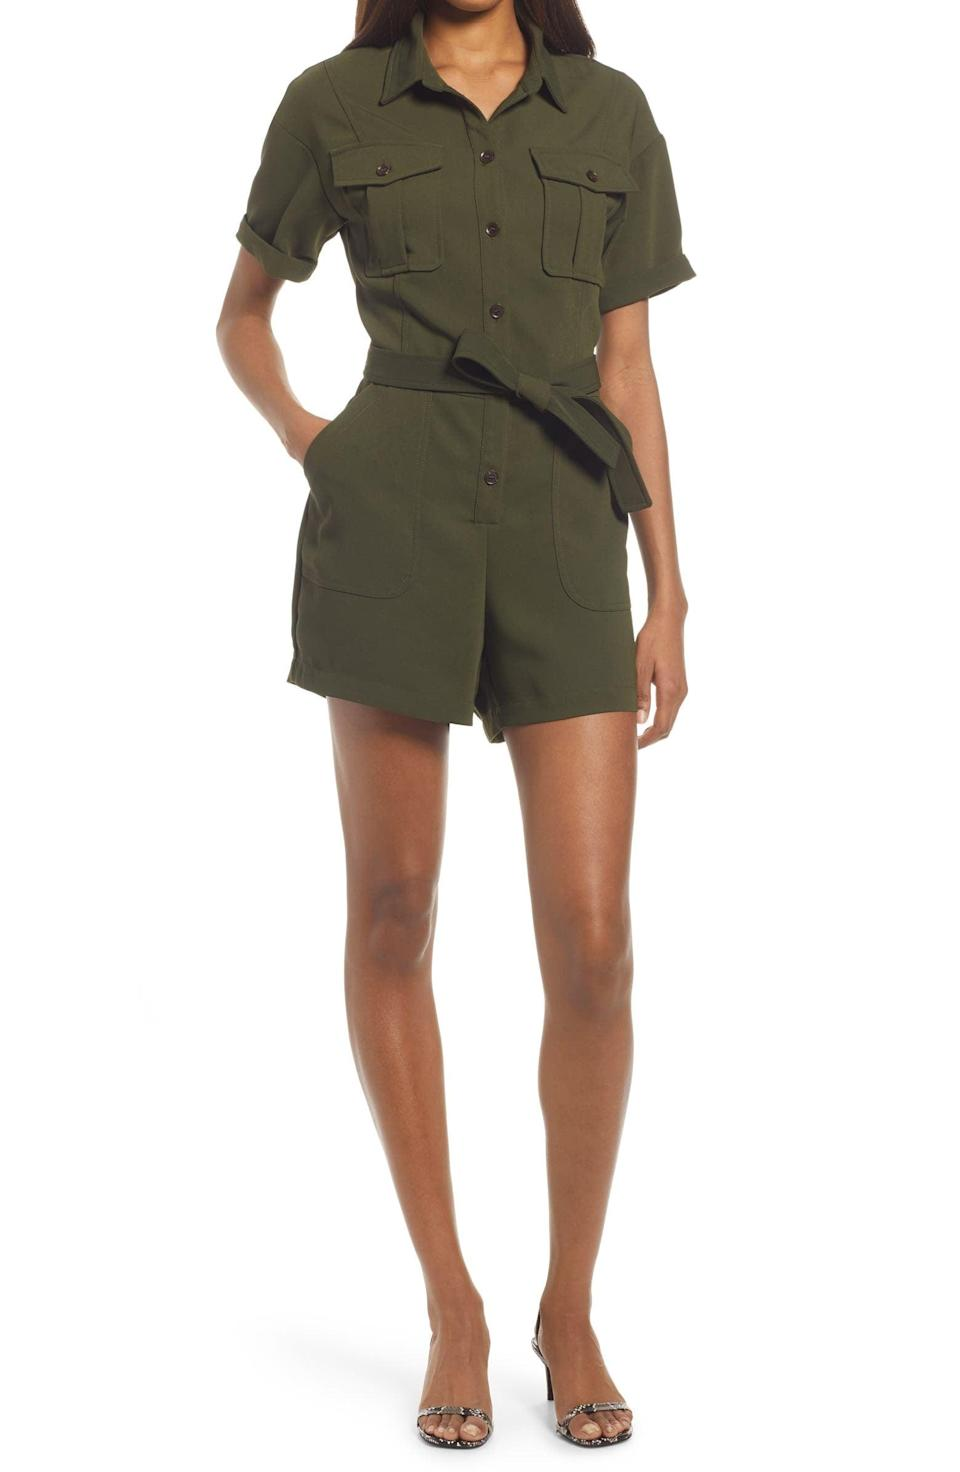 <p>This <span>Adelyn Rae Utility Crepe Romper</span> ($110) features oversized pockets and an adjustable tie belt for an easygoing look.</p>